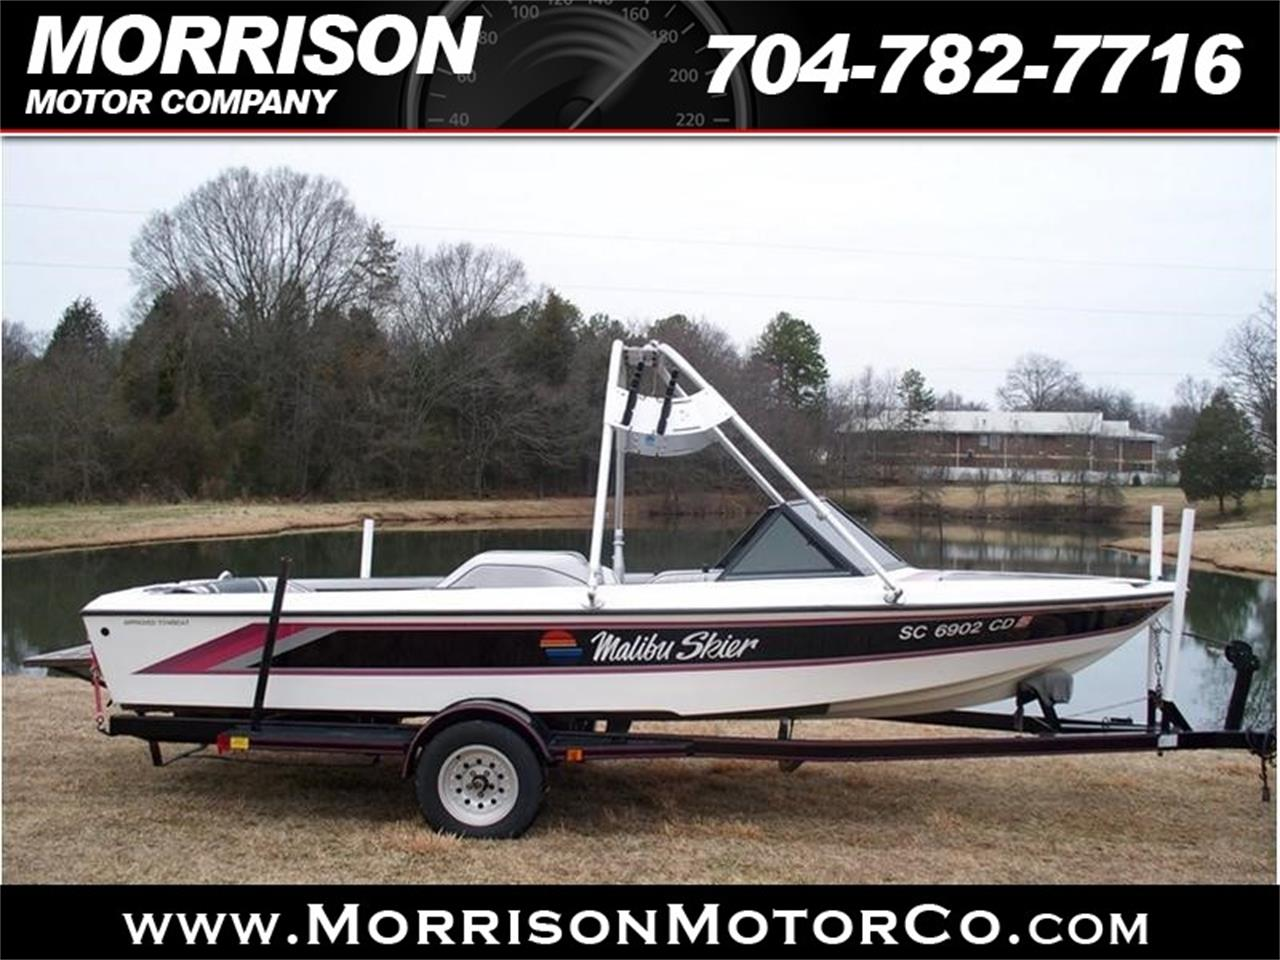 1991 Miscellaneous Boat for sale in Concord, NC – photo 14